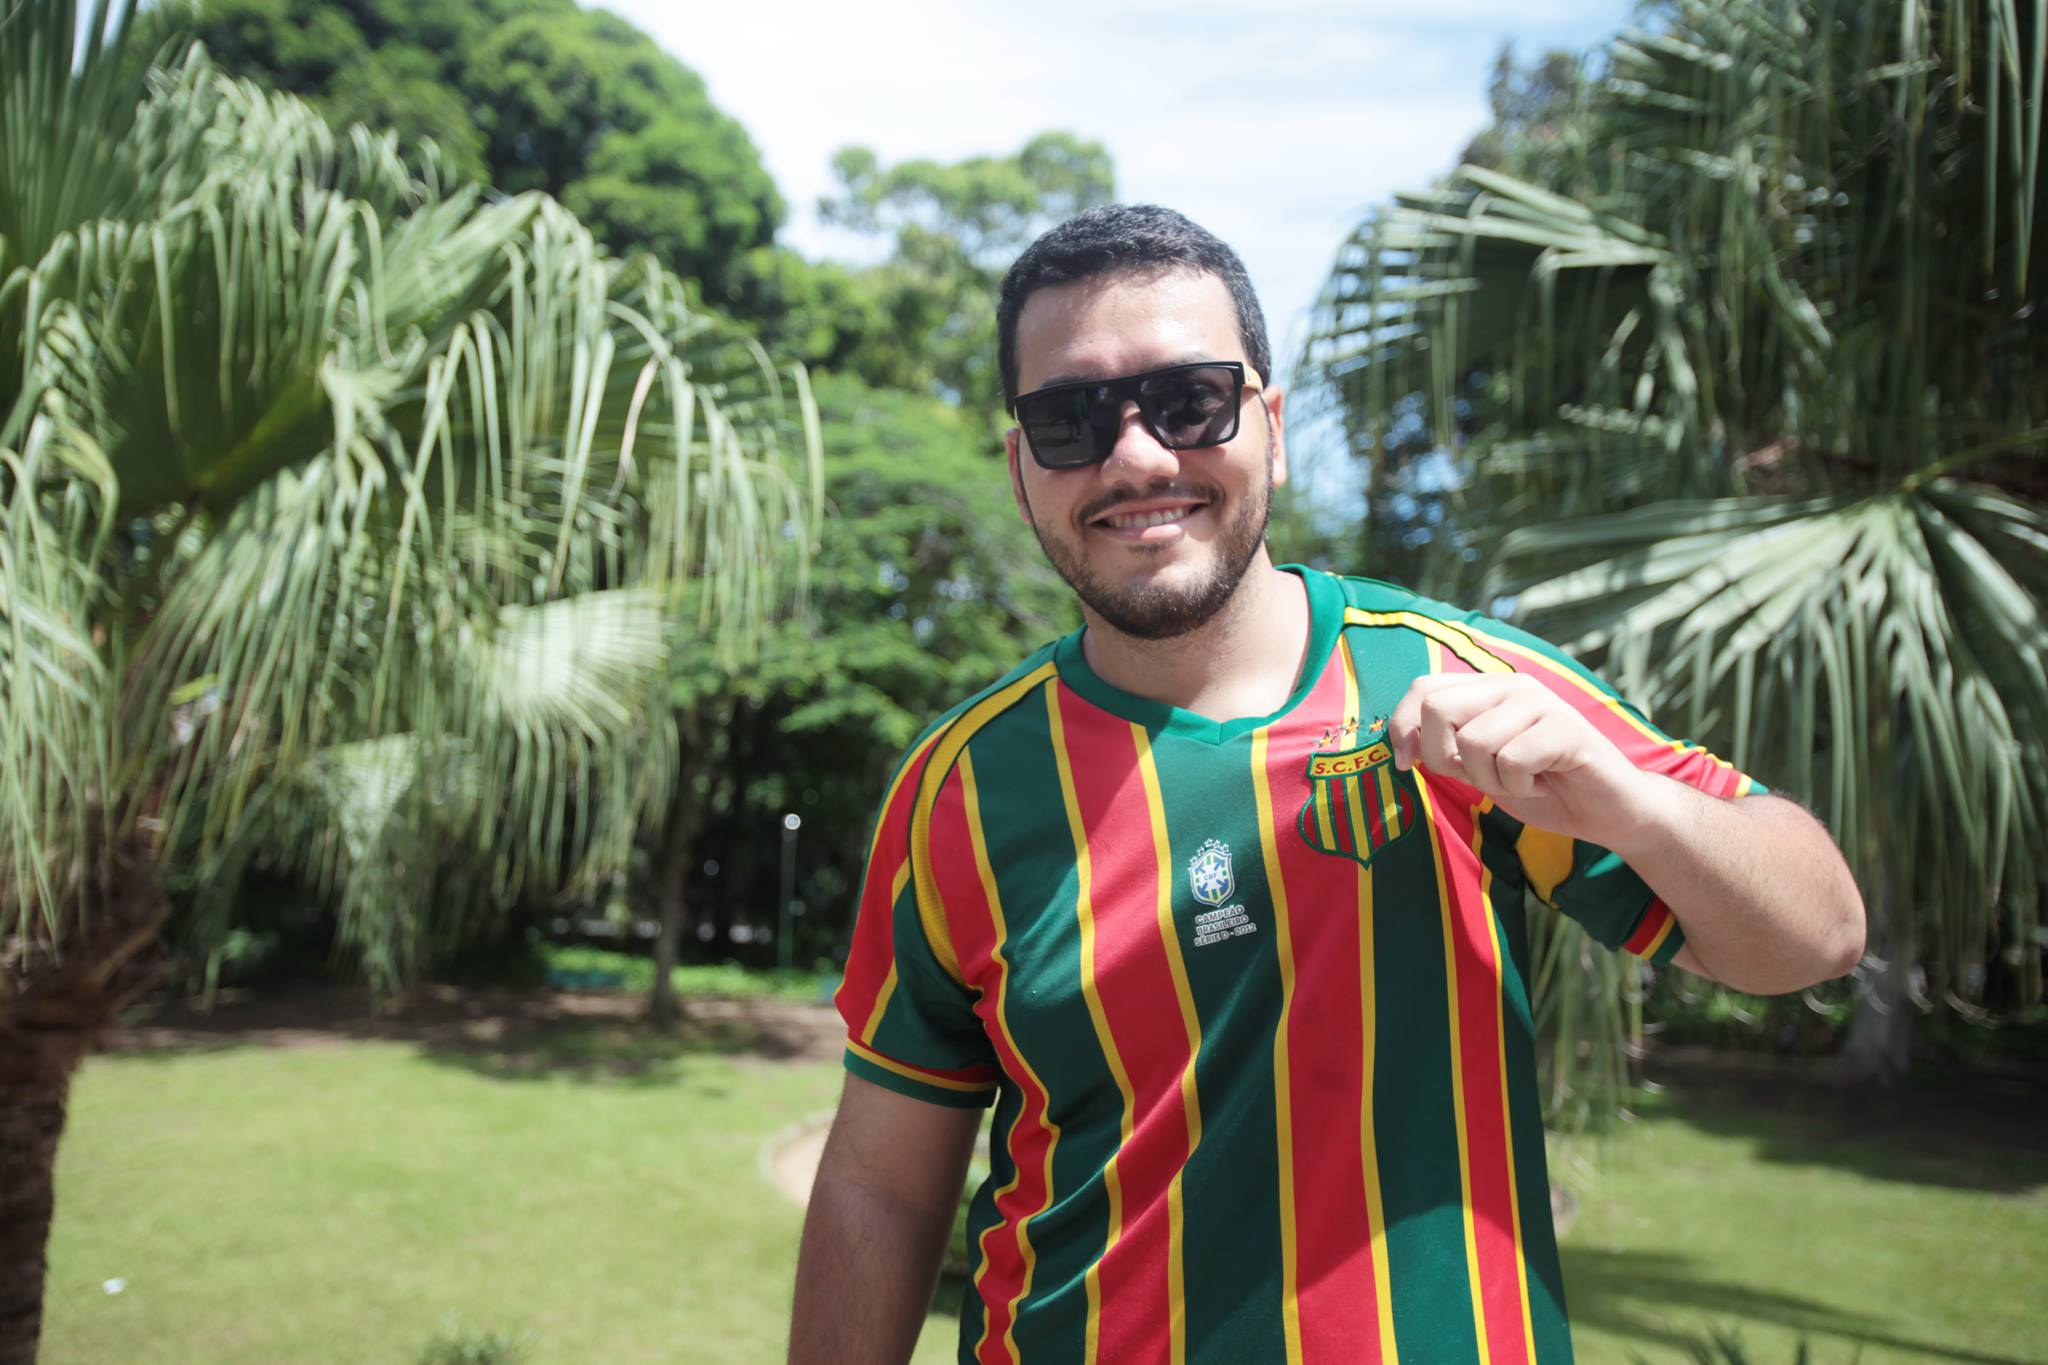 United Colours of Football: Portraits and stories in jerseys from around the world